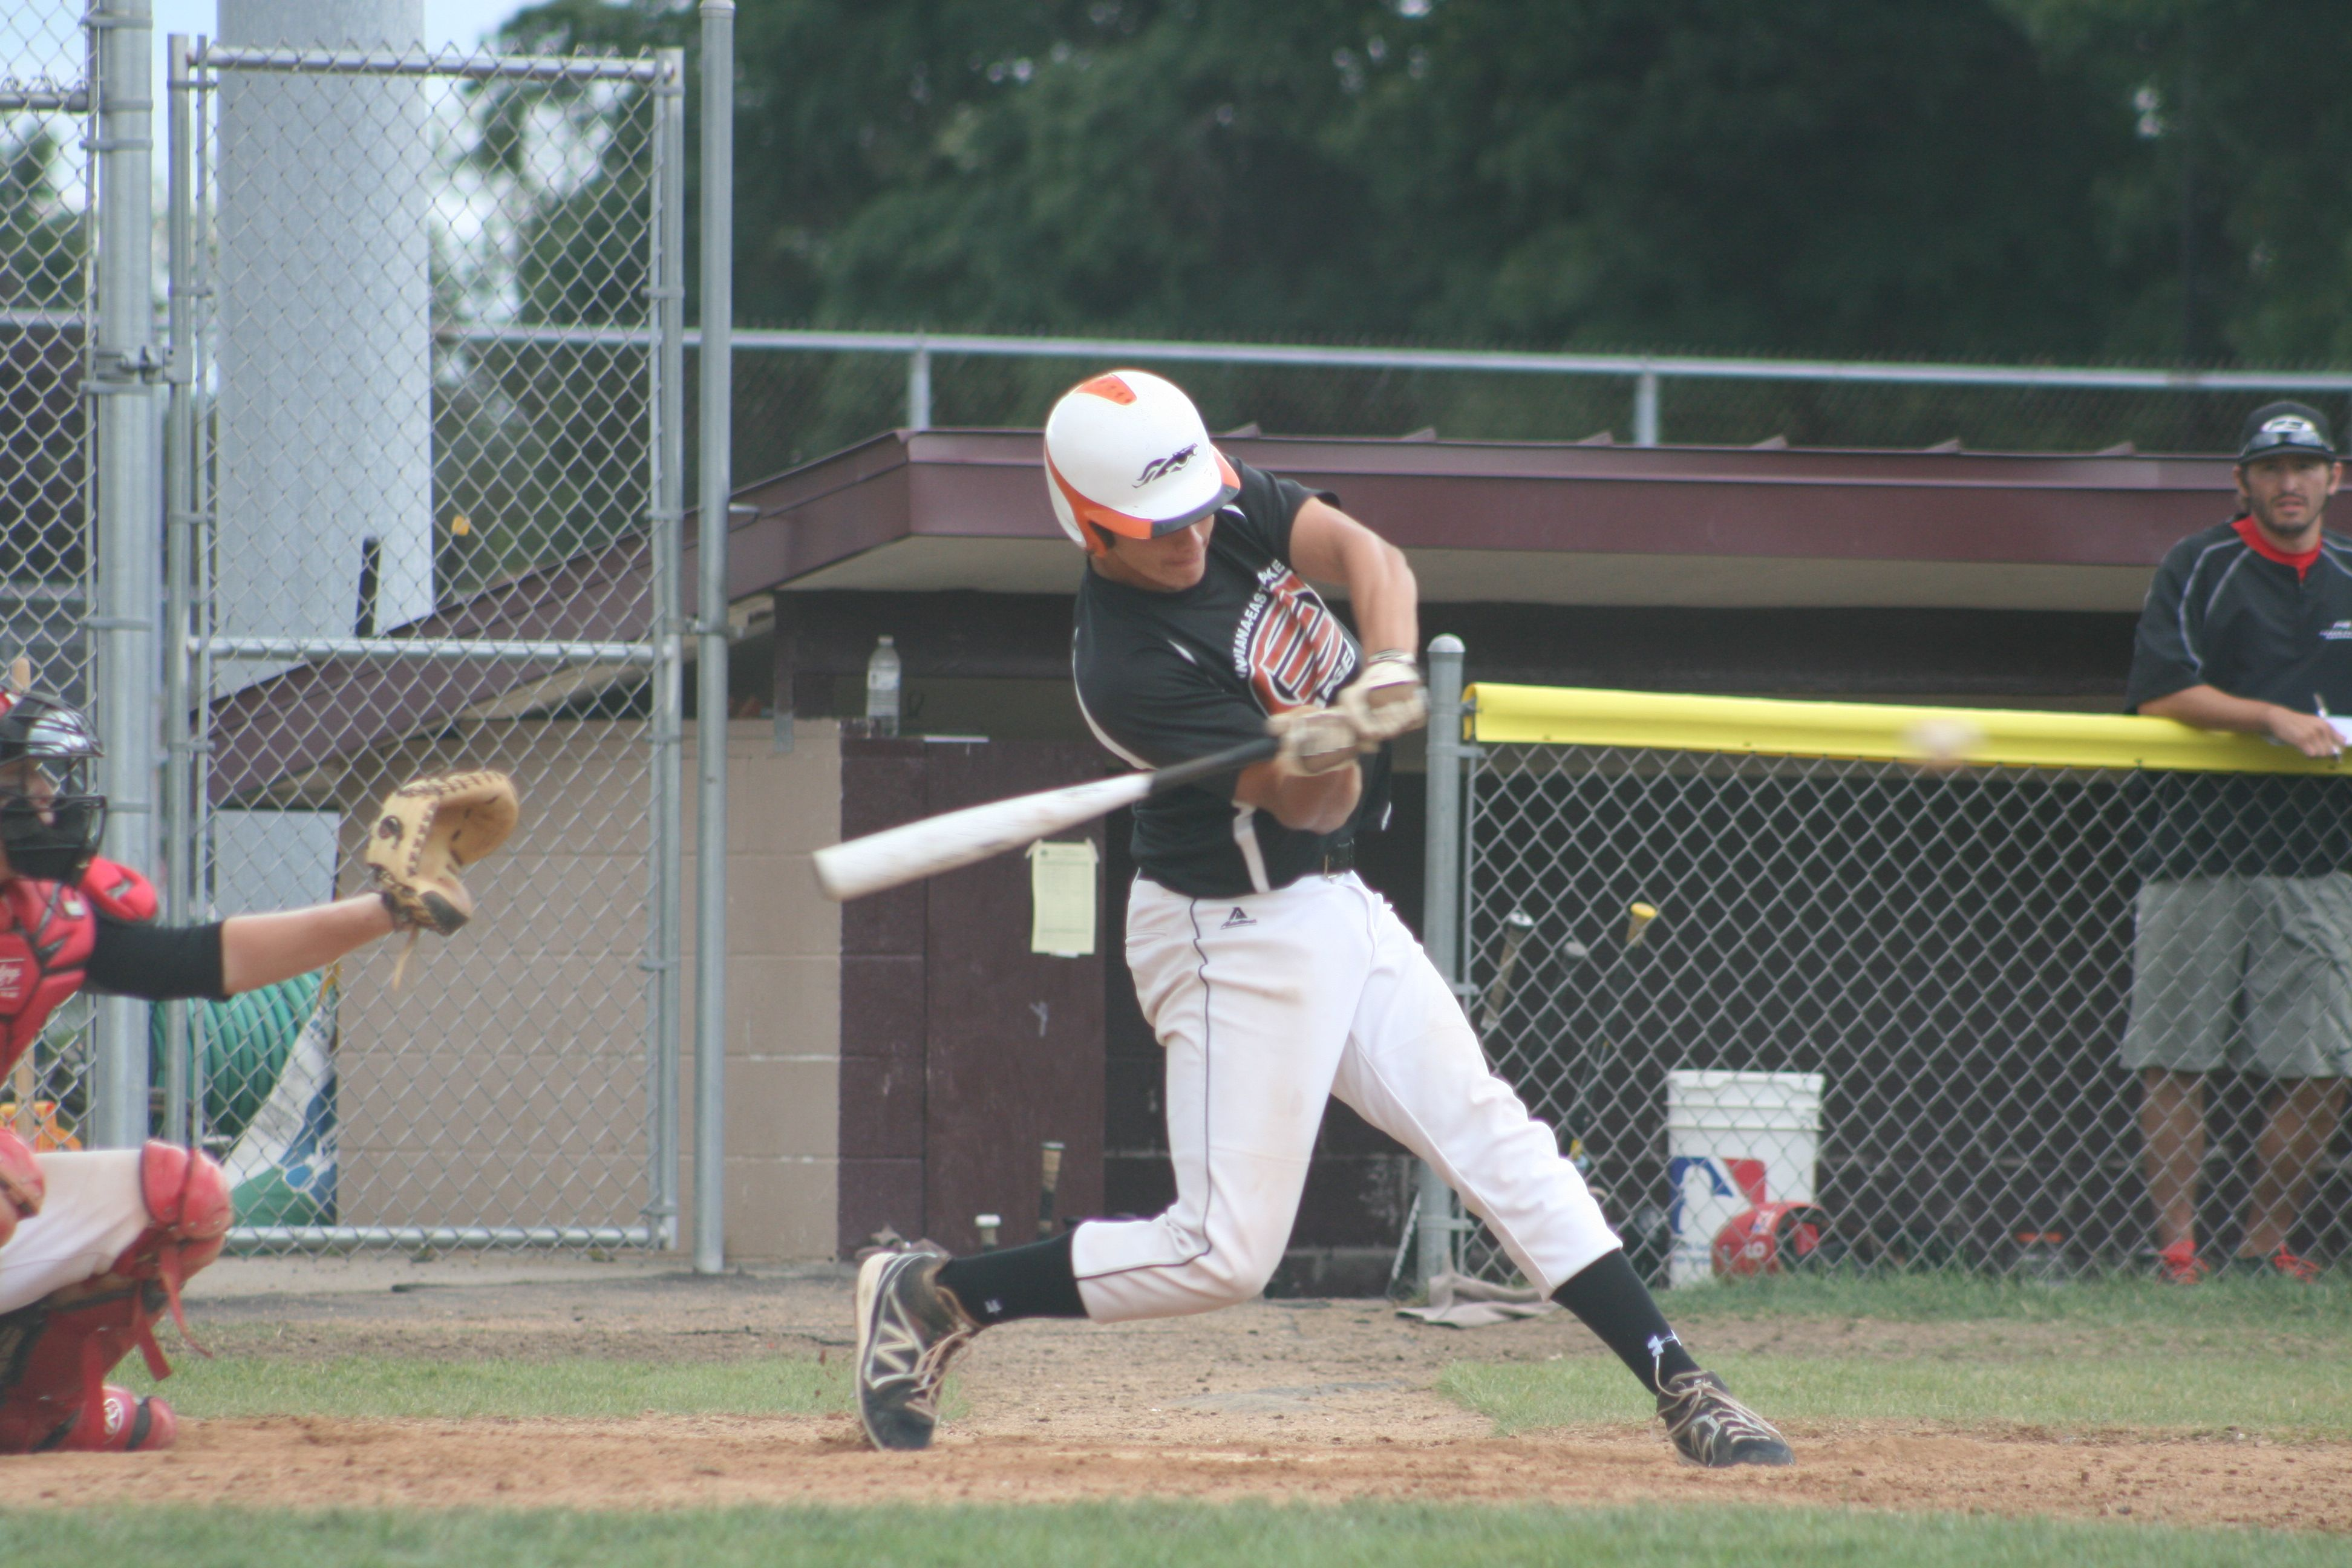 A Great Picture Of Jake S Swing 16u Indiana Chargers Photography Pictures Great Pictures